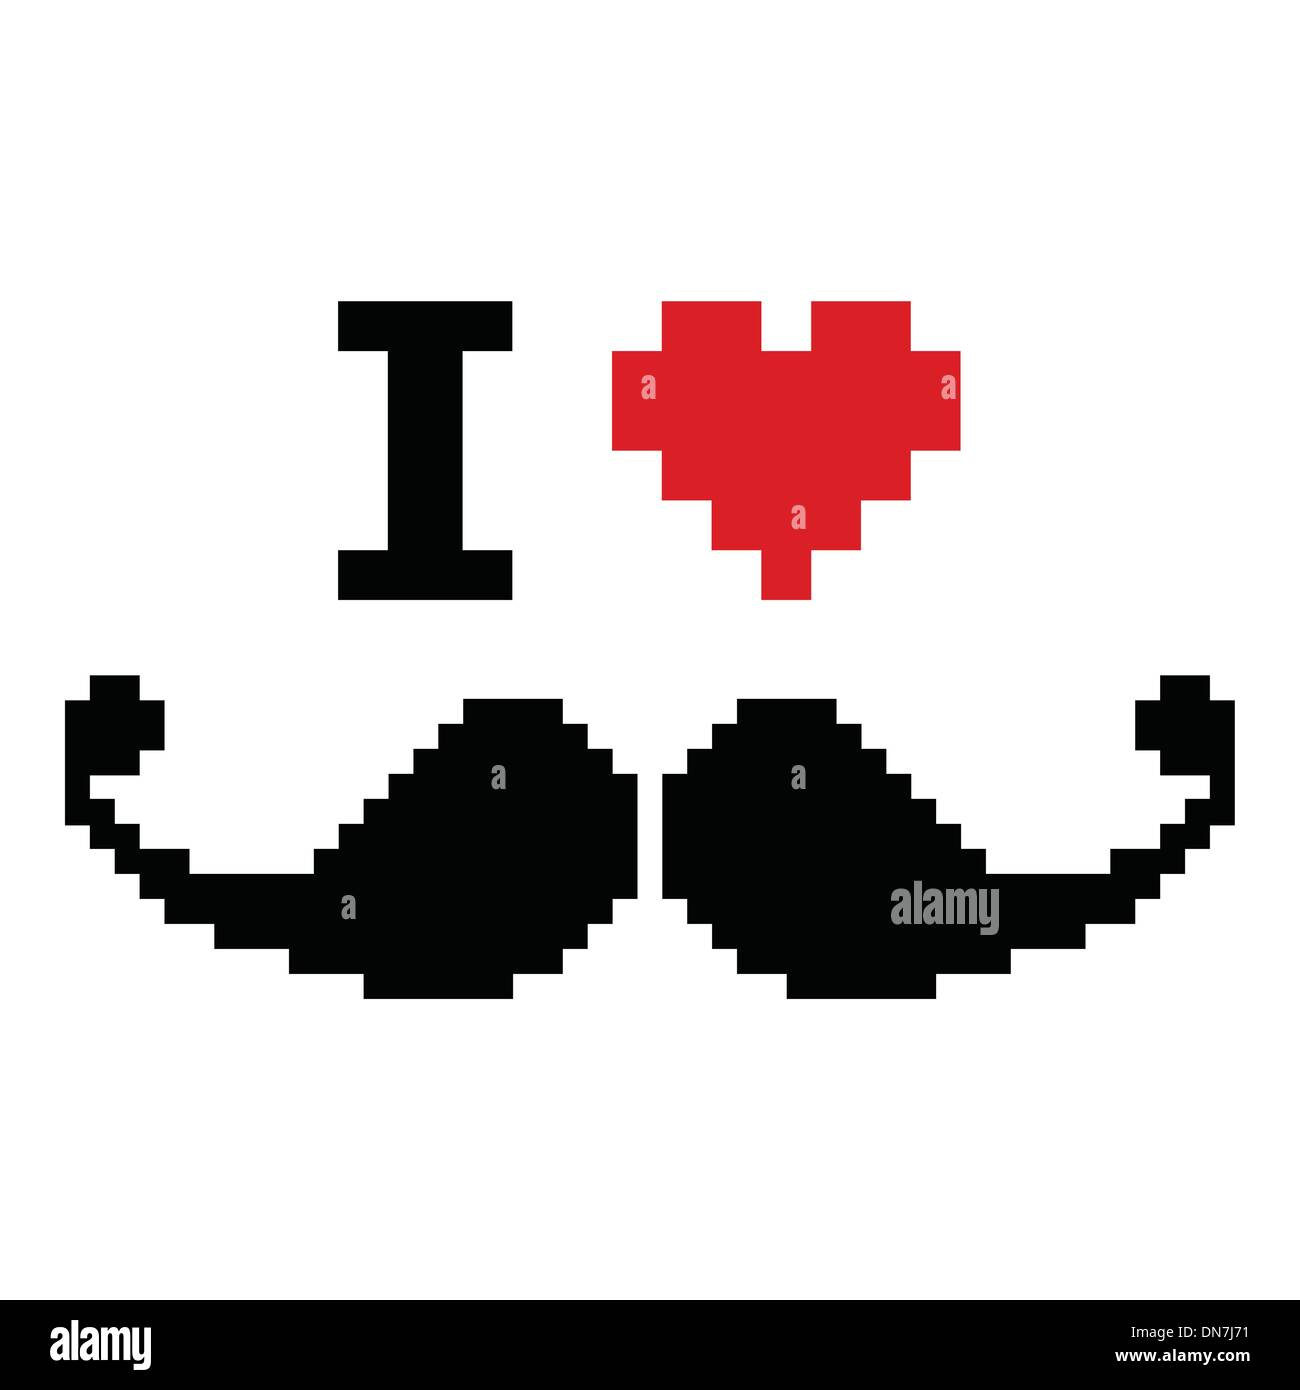 J'adore la moustache, signe de geek rétro pixélisé Photo Stock